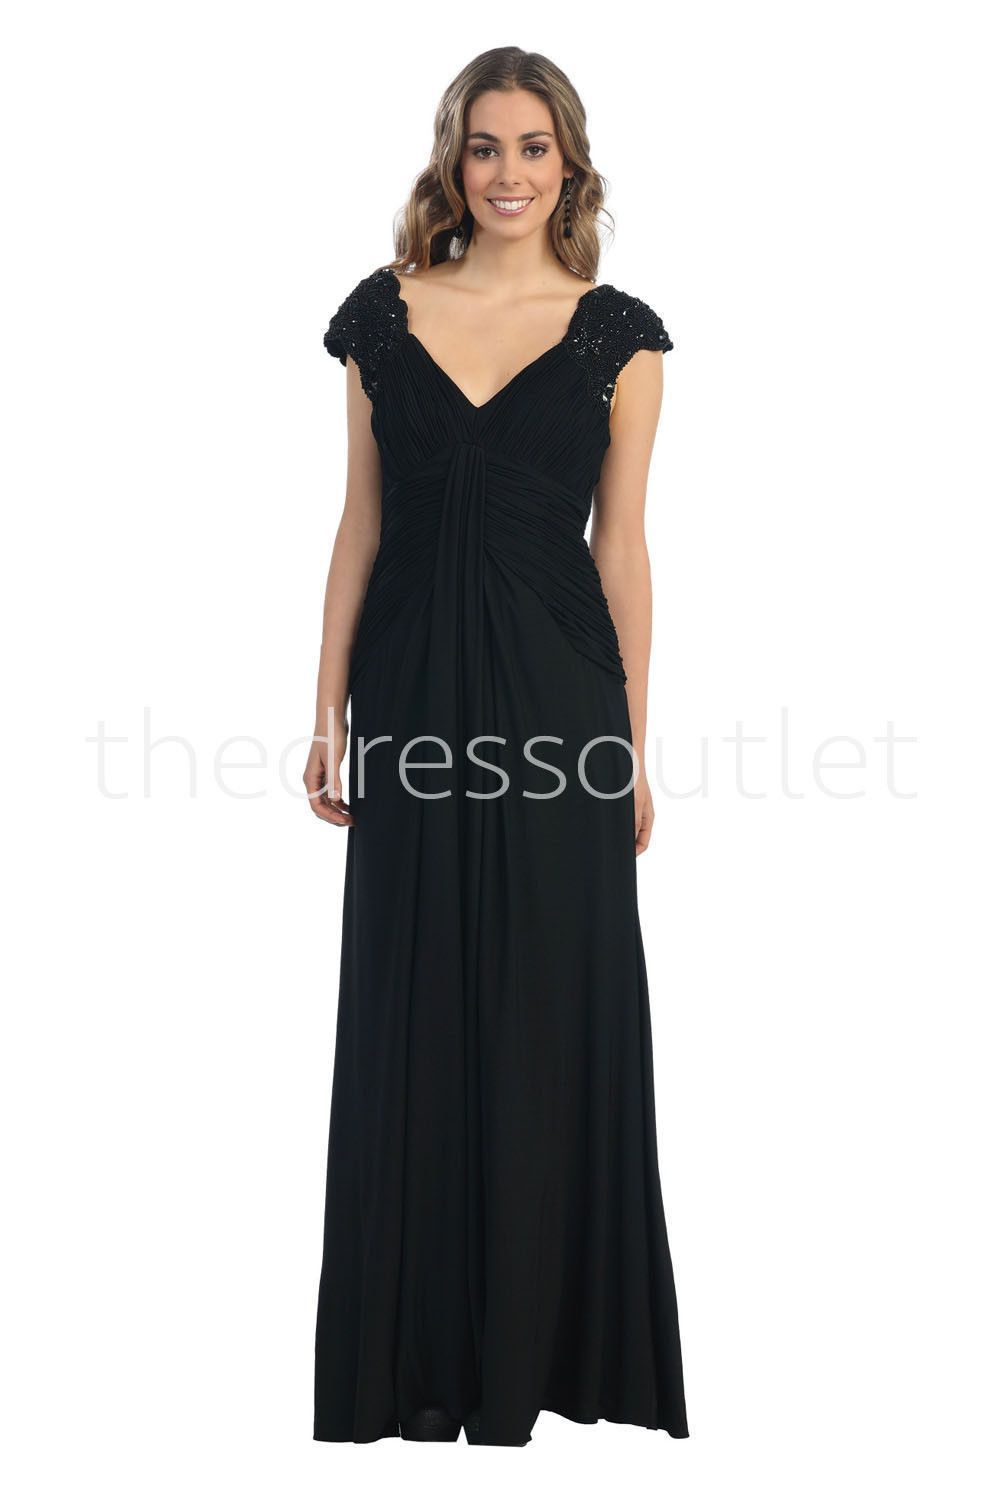 Modest plus size long formal mother of the bride black dress sale